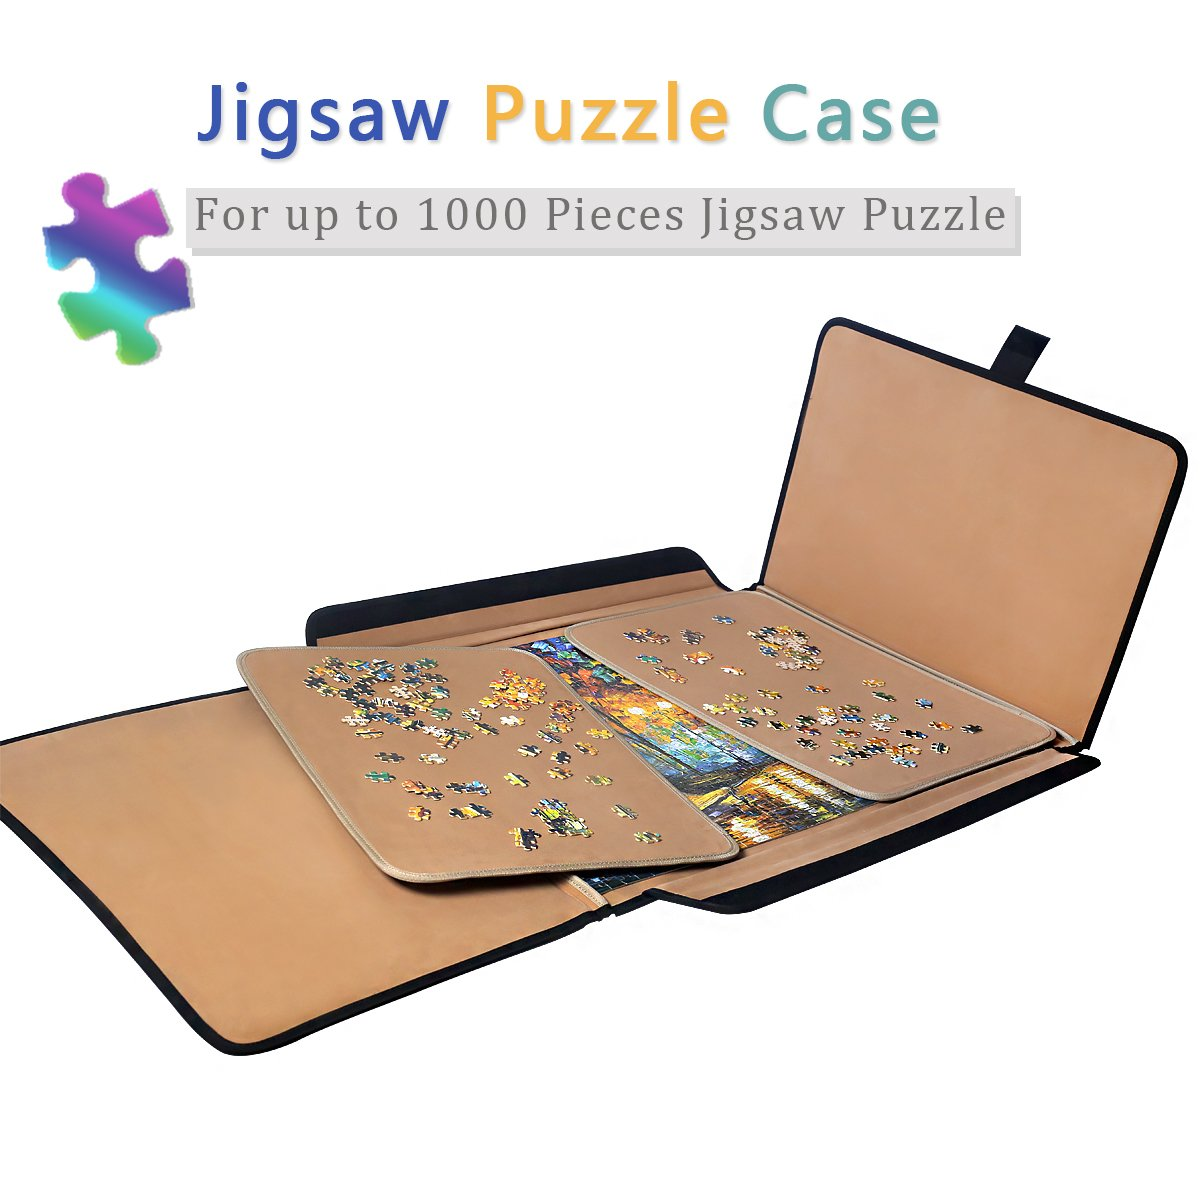 Jigsaw Puzzle case Puzzle Board- Ingooood Easy Move Storage Jigsaw Puzzle mat Work Separate Puzzle Board for up to 1,000 Pieces Durable jigboard by Ingooood